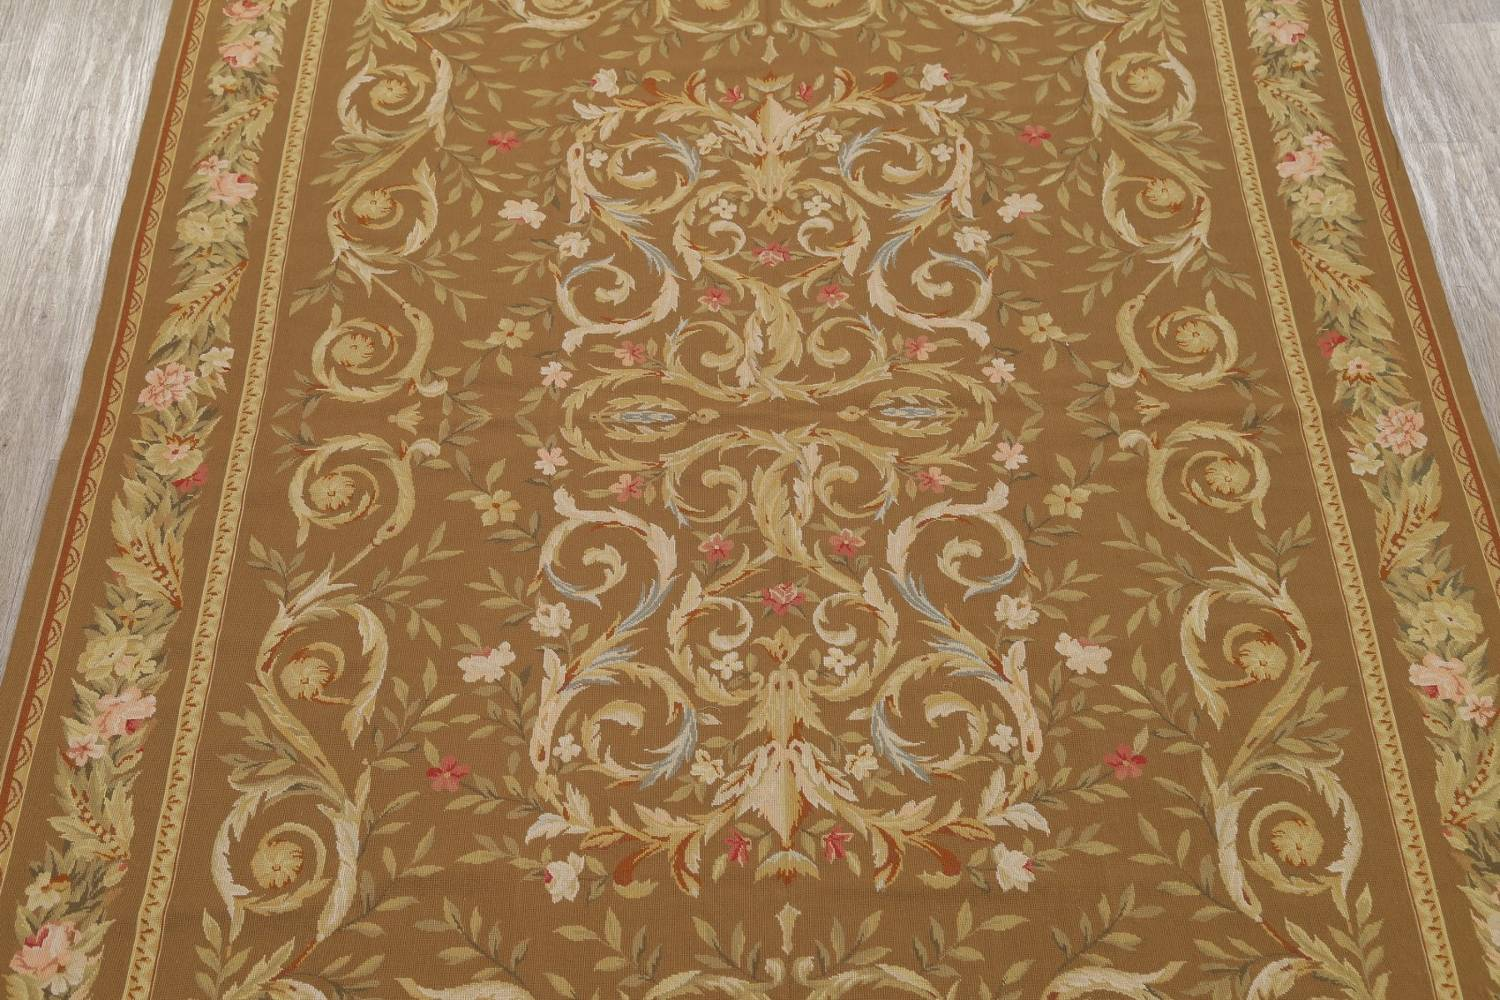 Floral Brown Aubusson Chinese Oriental Hand-Woven Area Rug Wool 8x10 image 3